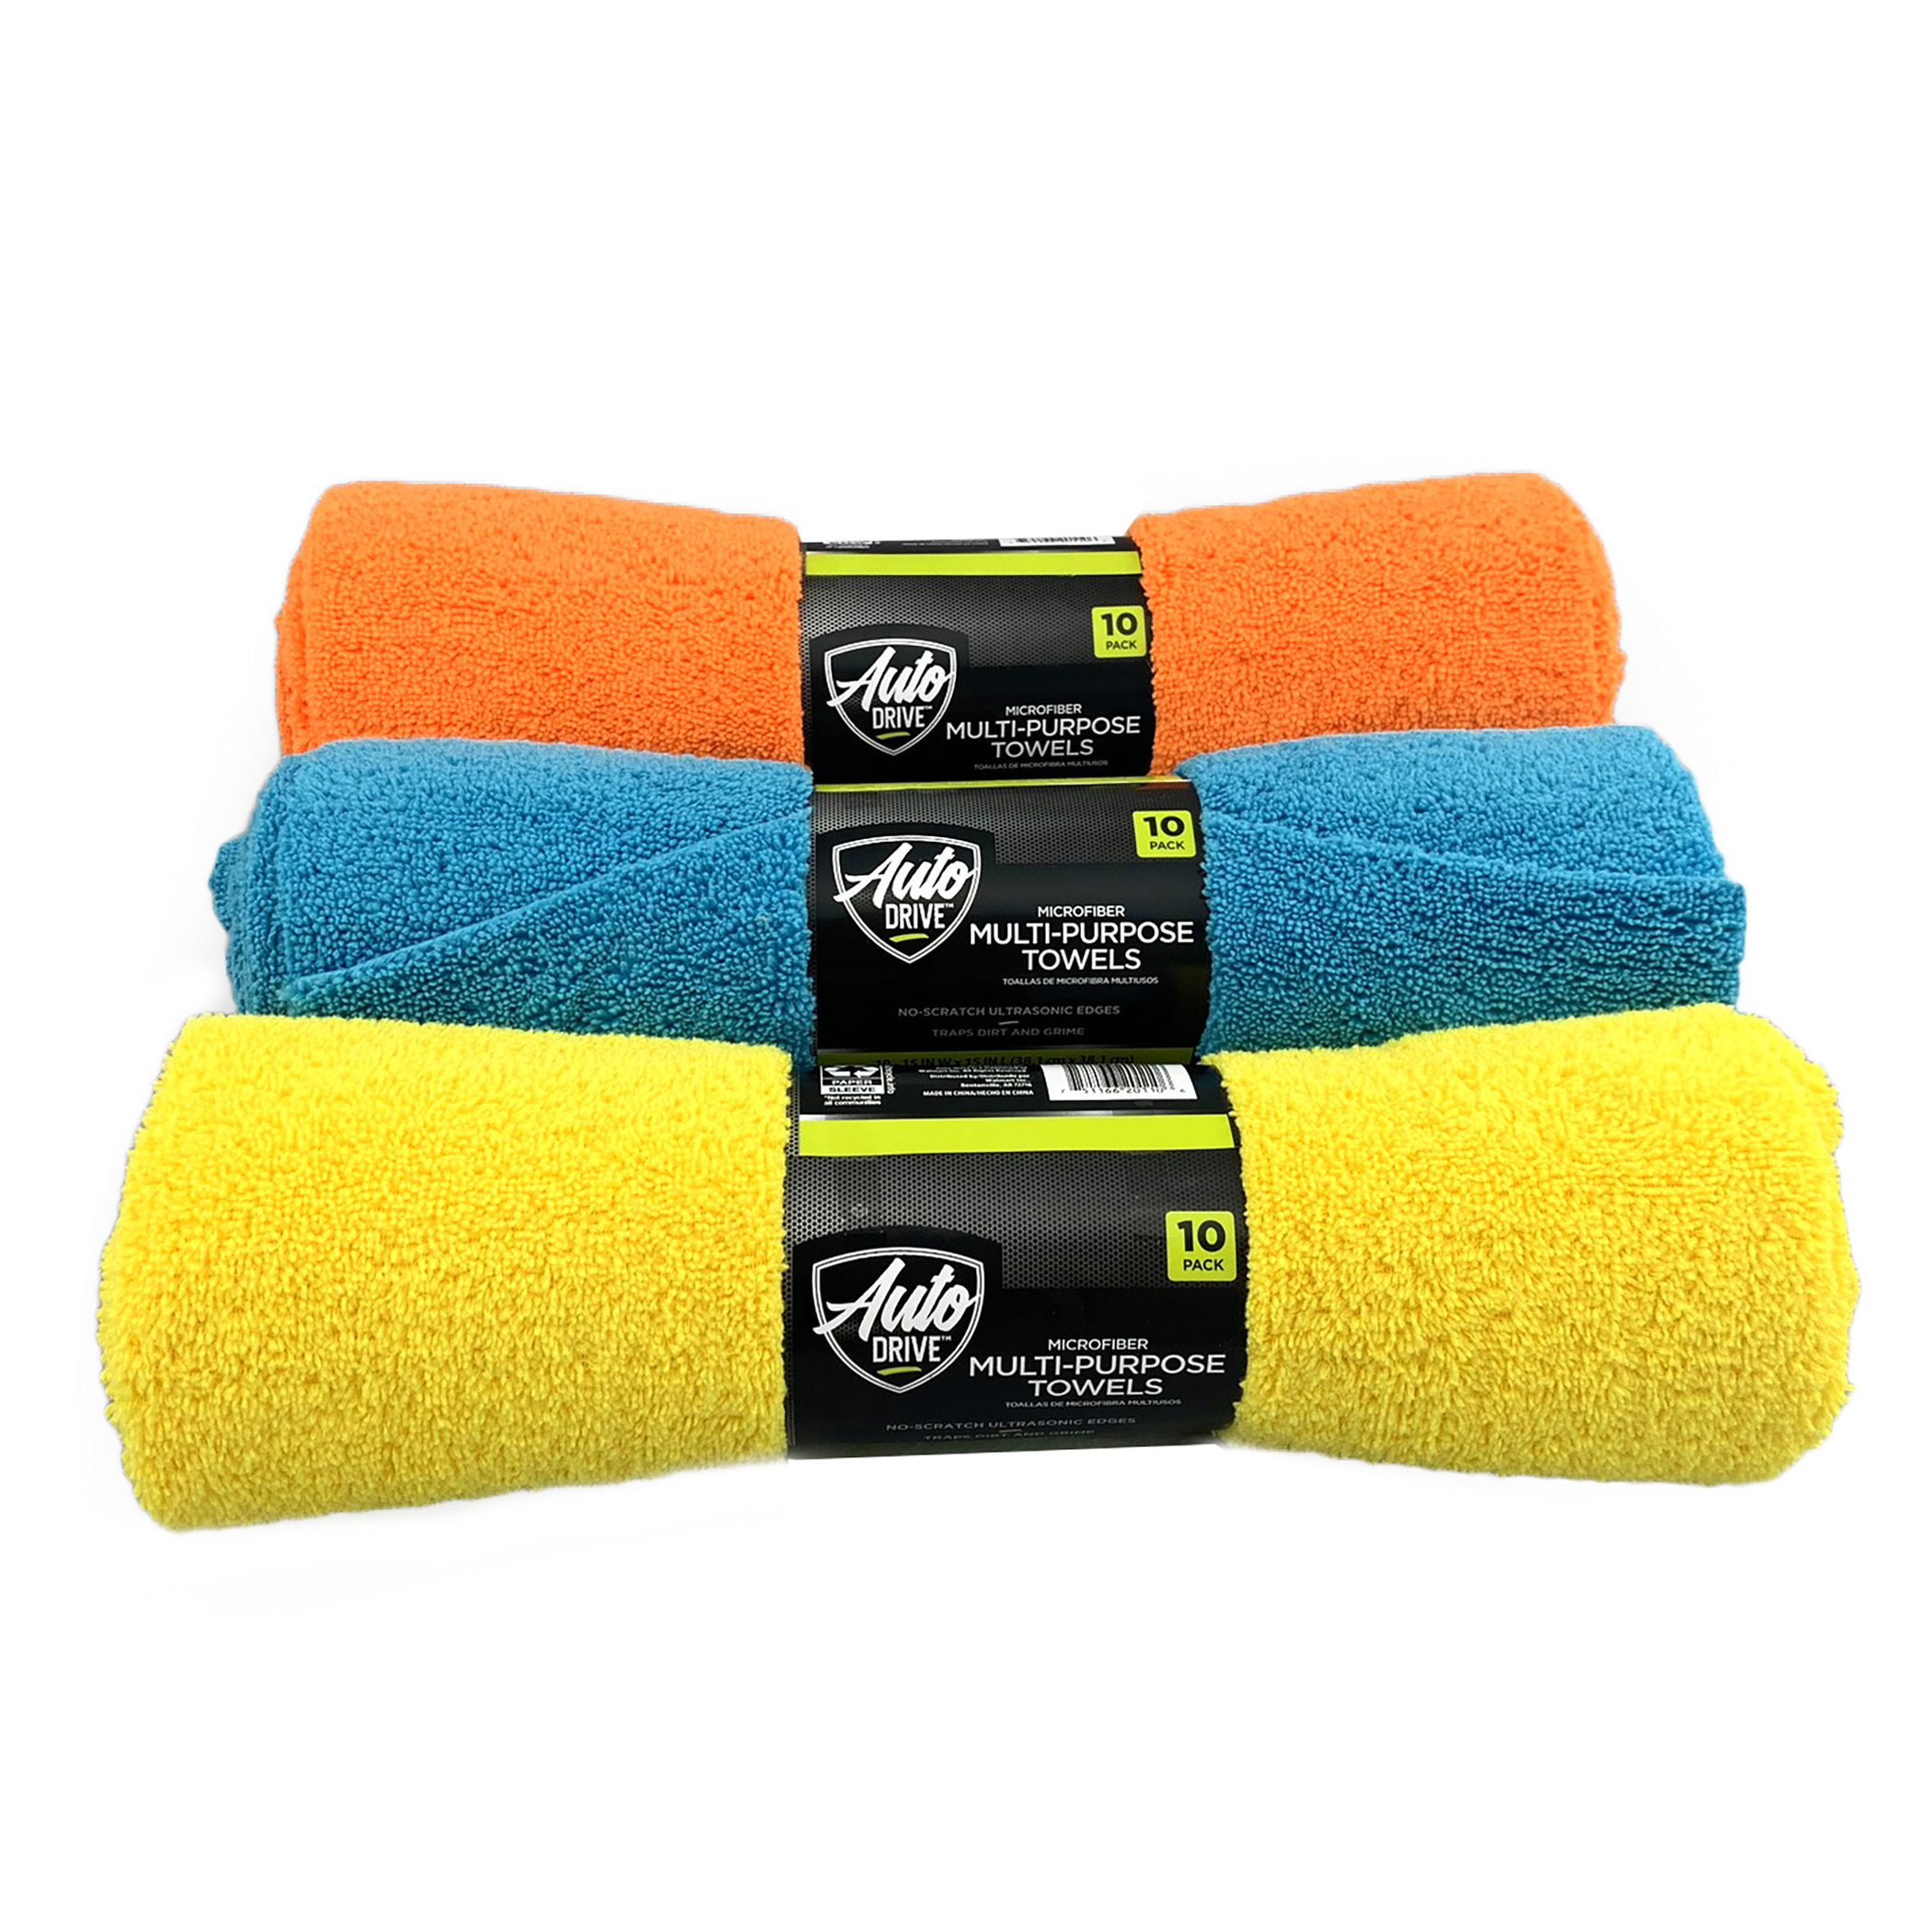 Auto Drive Car Wash Microfiber Edge Towel,10 Count,Yellow